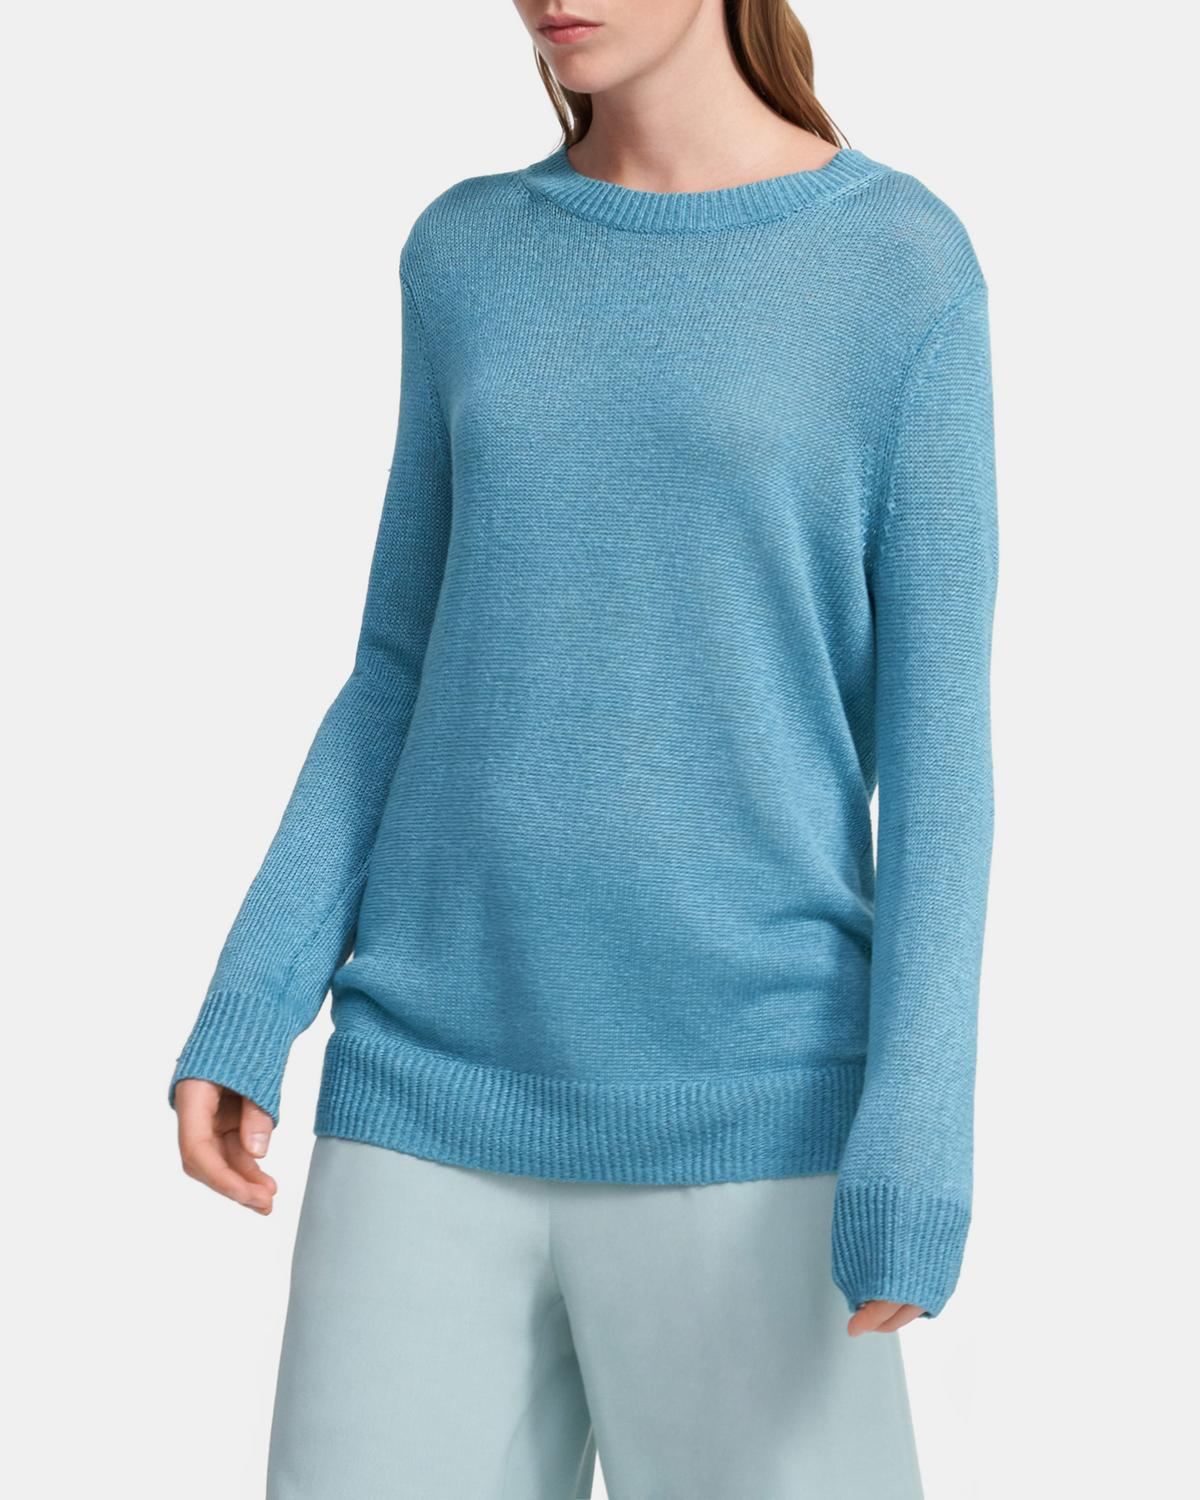 Crewneck Sweater in Linen-Viscose